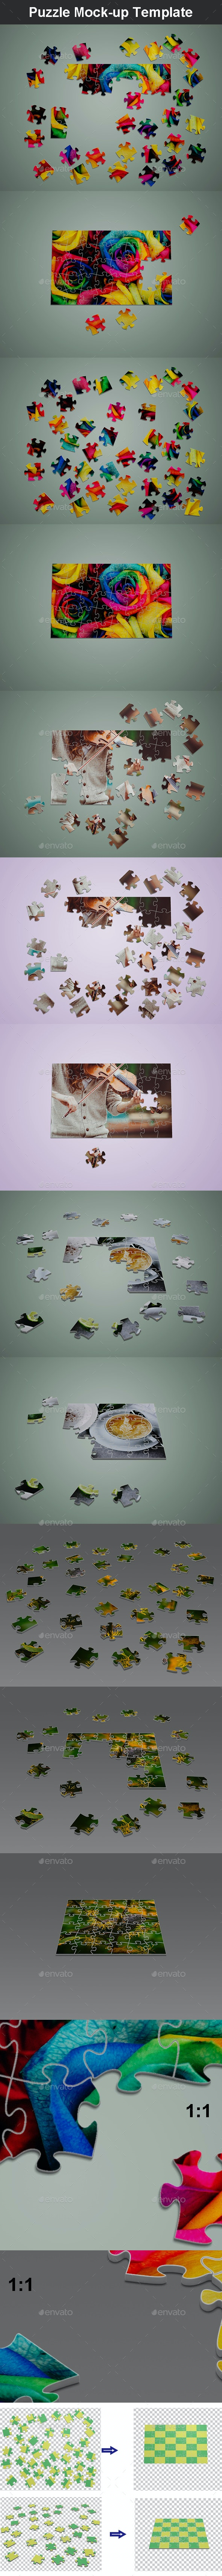 Puzzle Mock-up Template - Miscellaneous Print